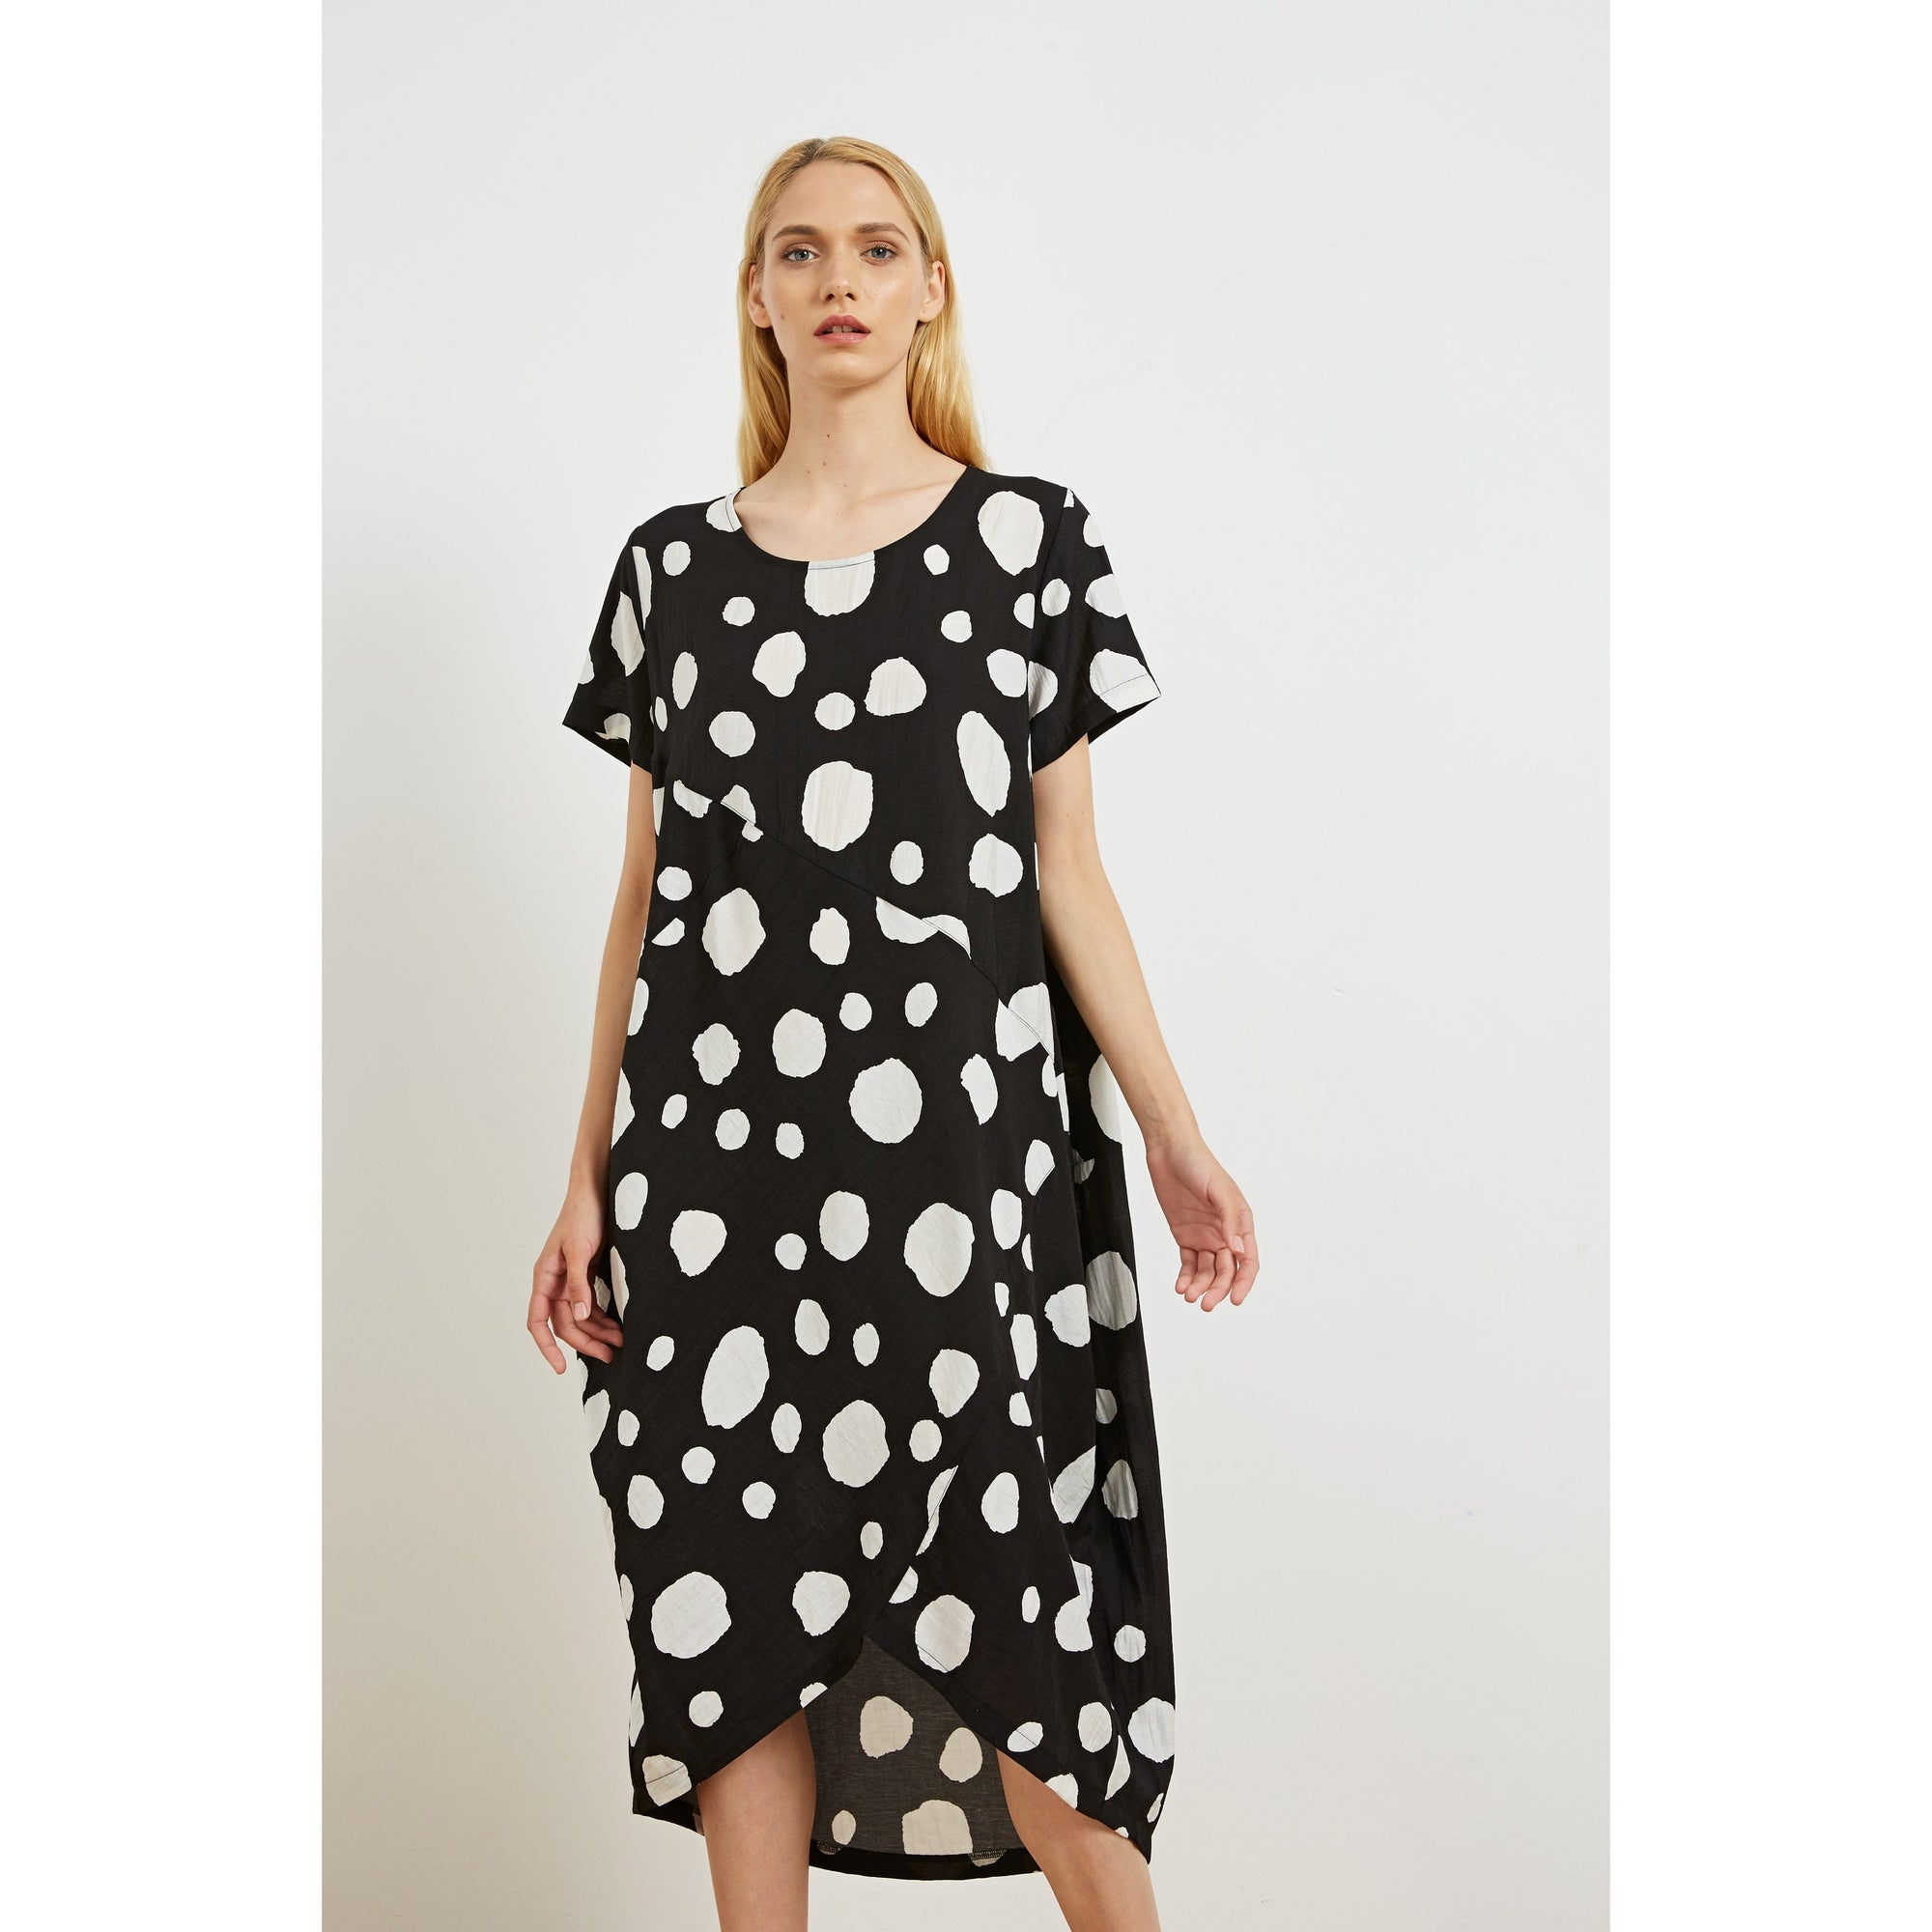 Tirelli Marow Dress Black and White Spot Print.